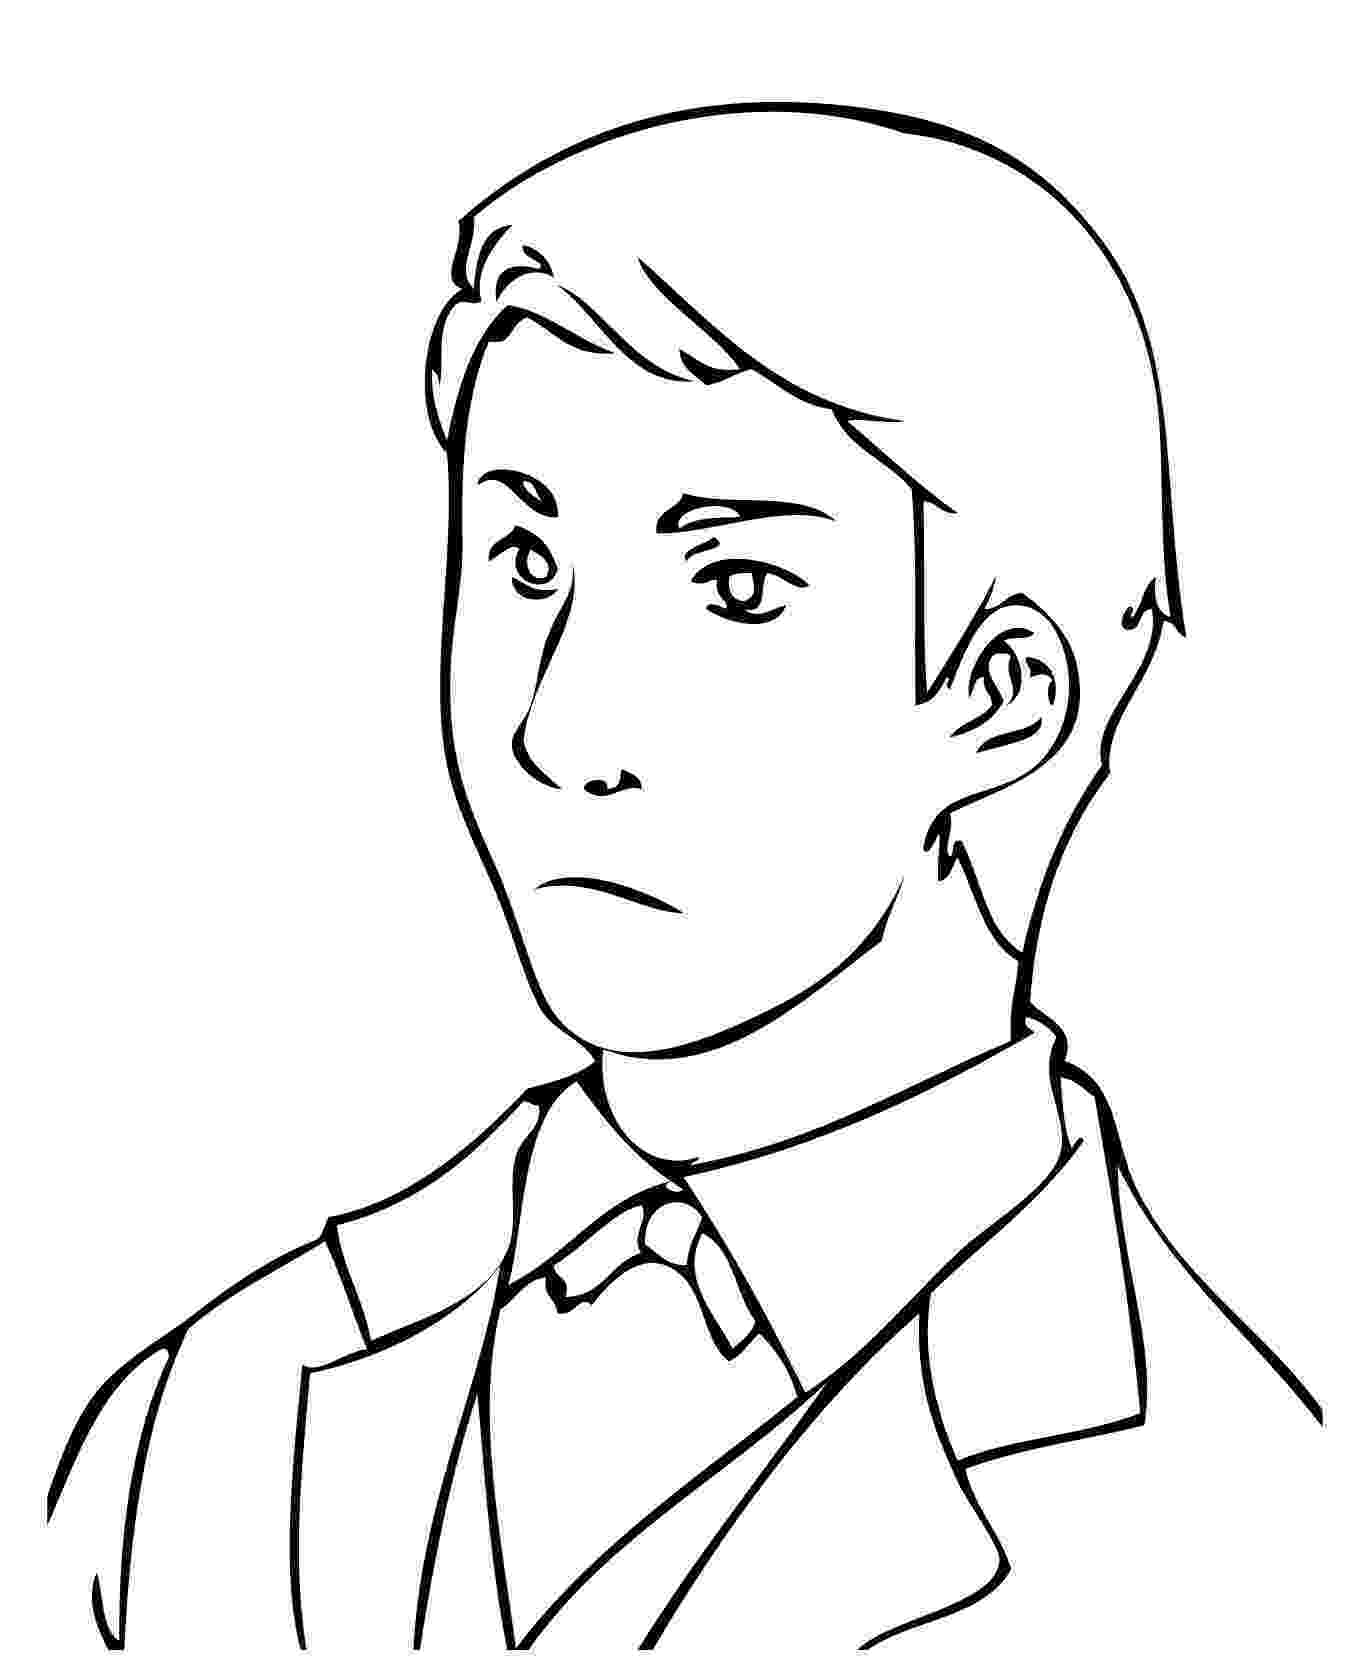 man coloring page handsome business man coloring pages best place to color man coloring page